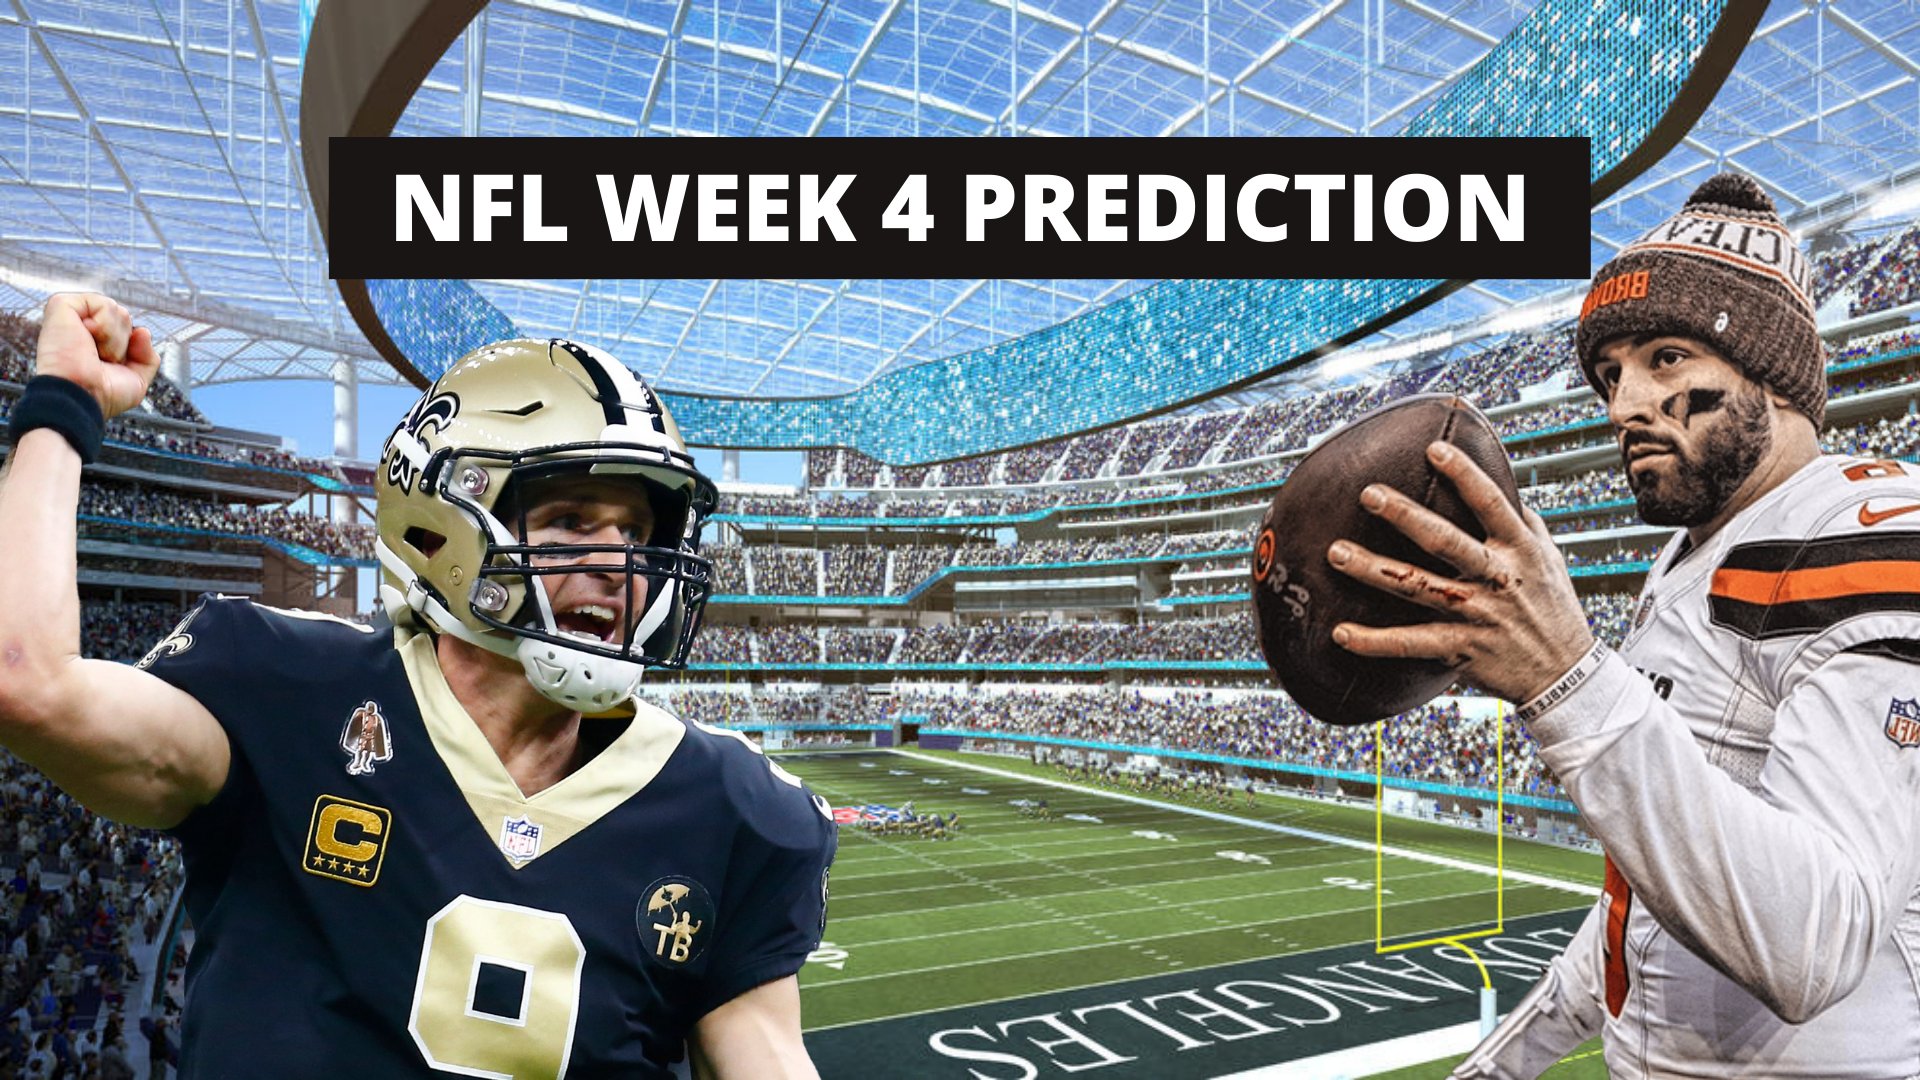 NFL Week 4 betting odds, predictions and expert picks - THE SPORTS ROOM